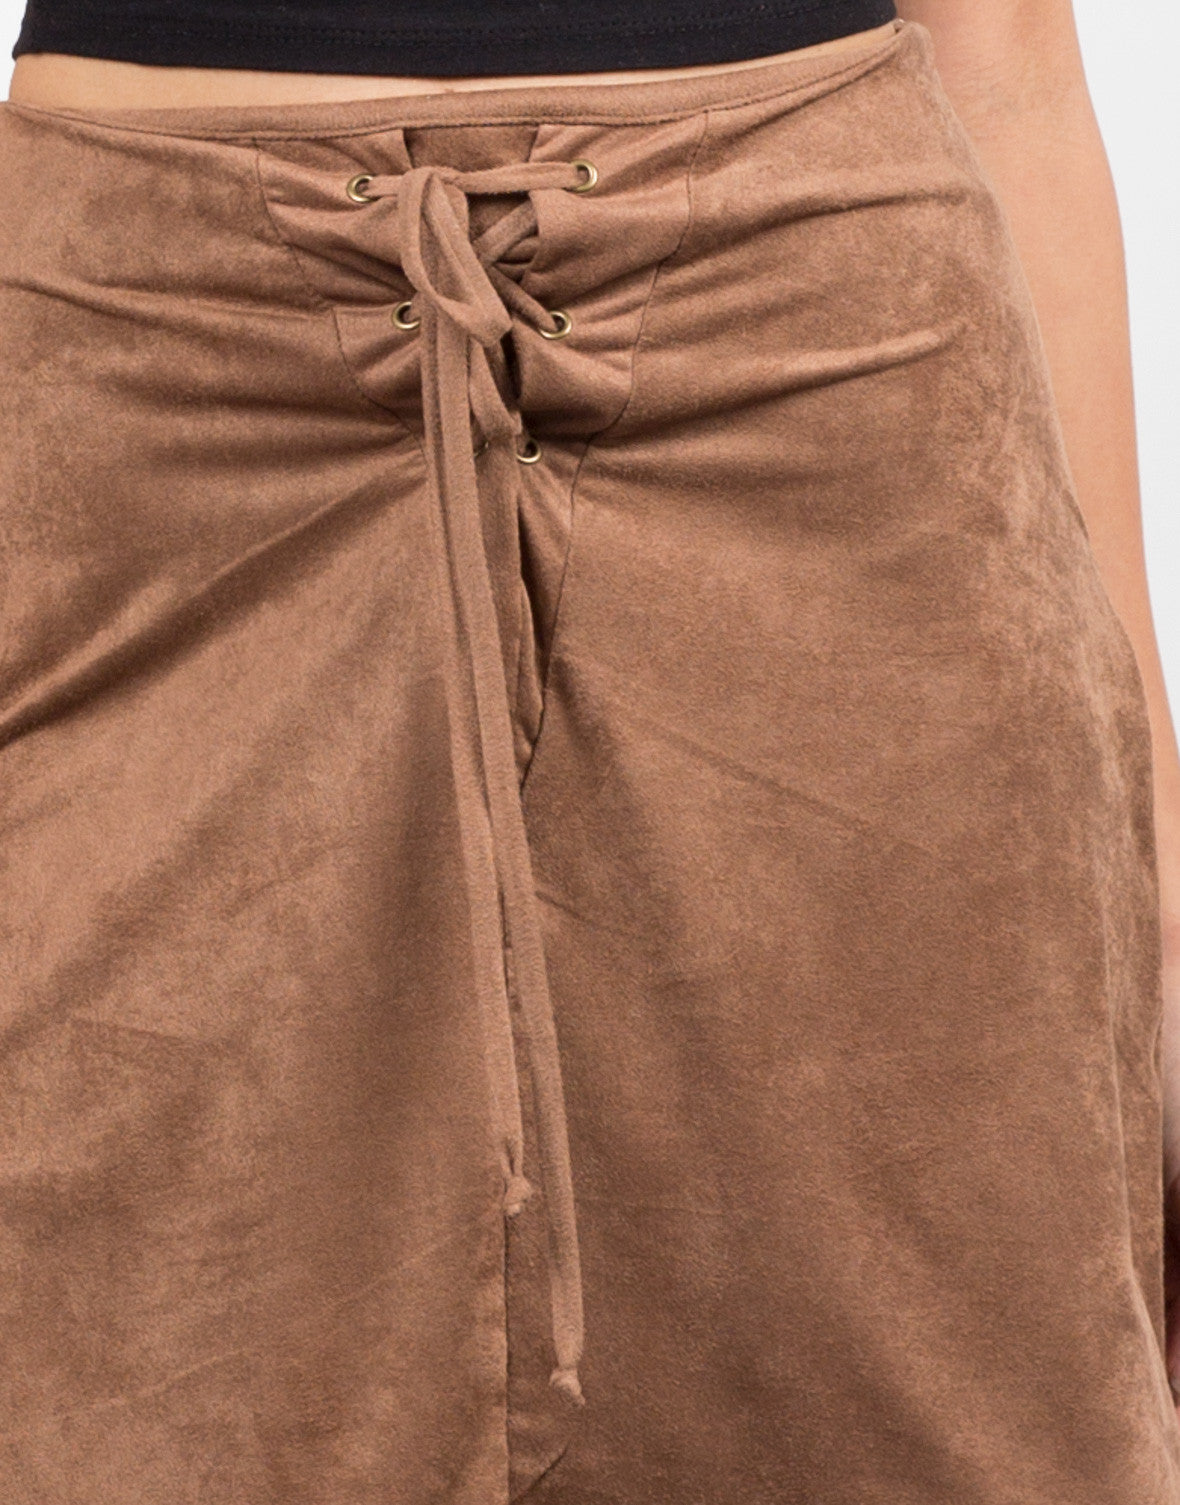 Detail of Microsuede Lace Up Skirt